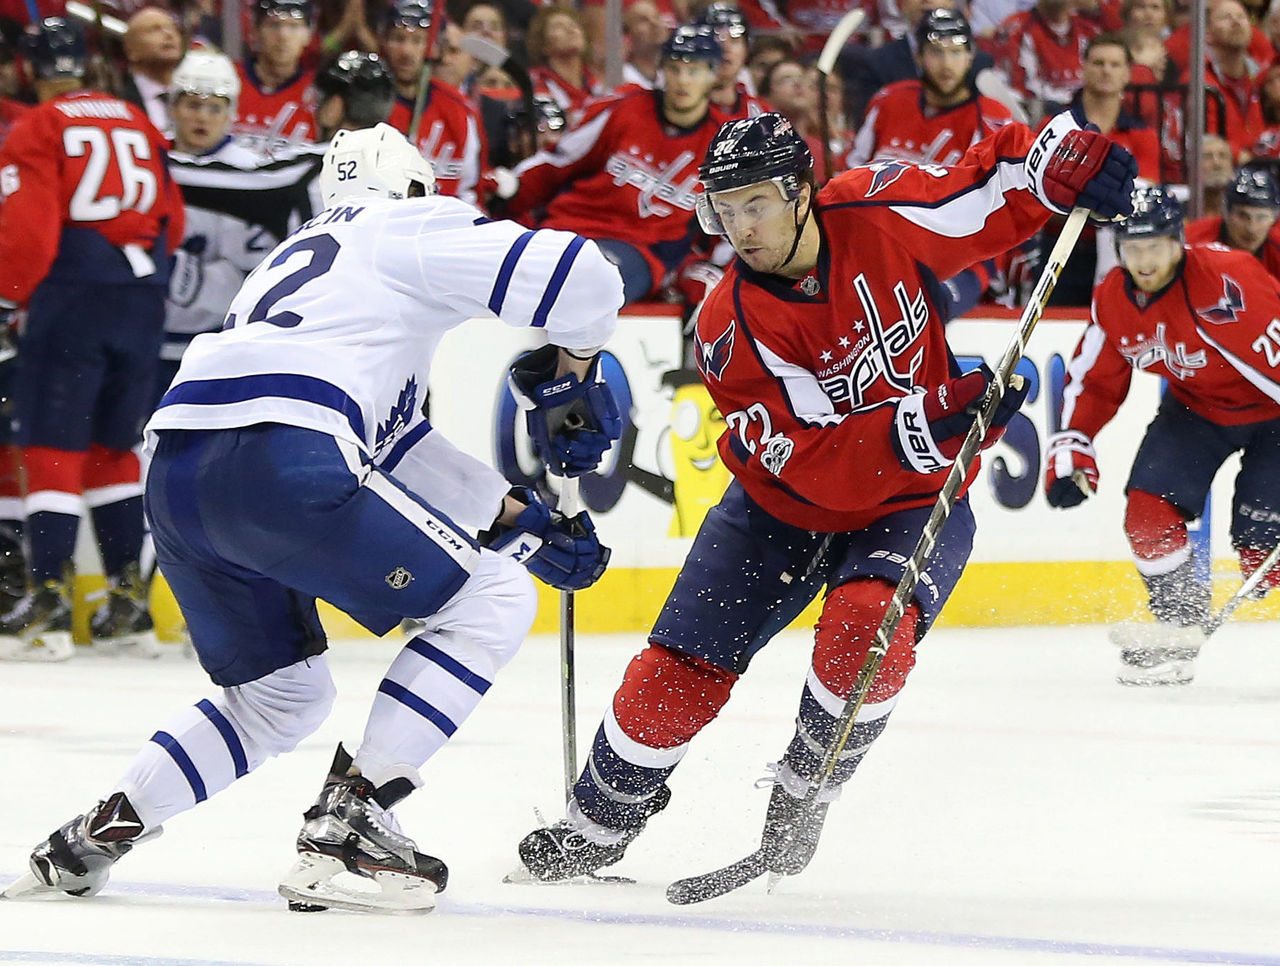 Cropped 2017 04 22t032141z 841731882 nocid rtrmadp 3 nhl stanley cup playoffs toronto maple leafs at washington capitals